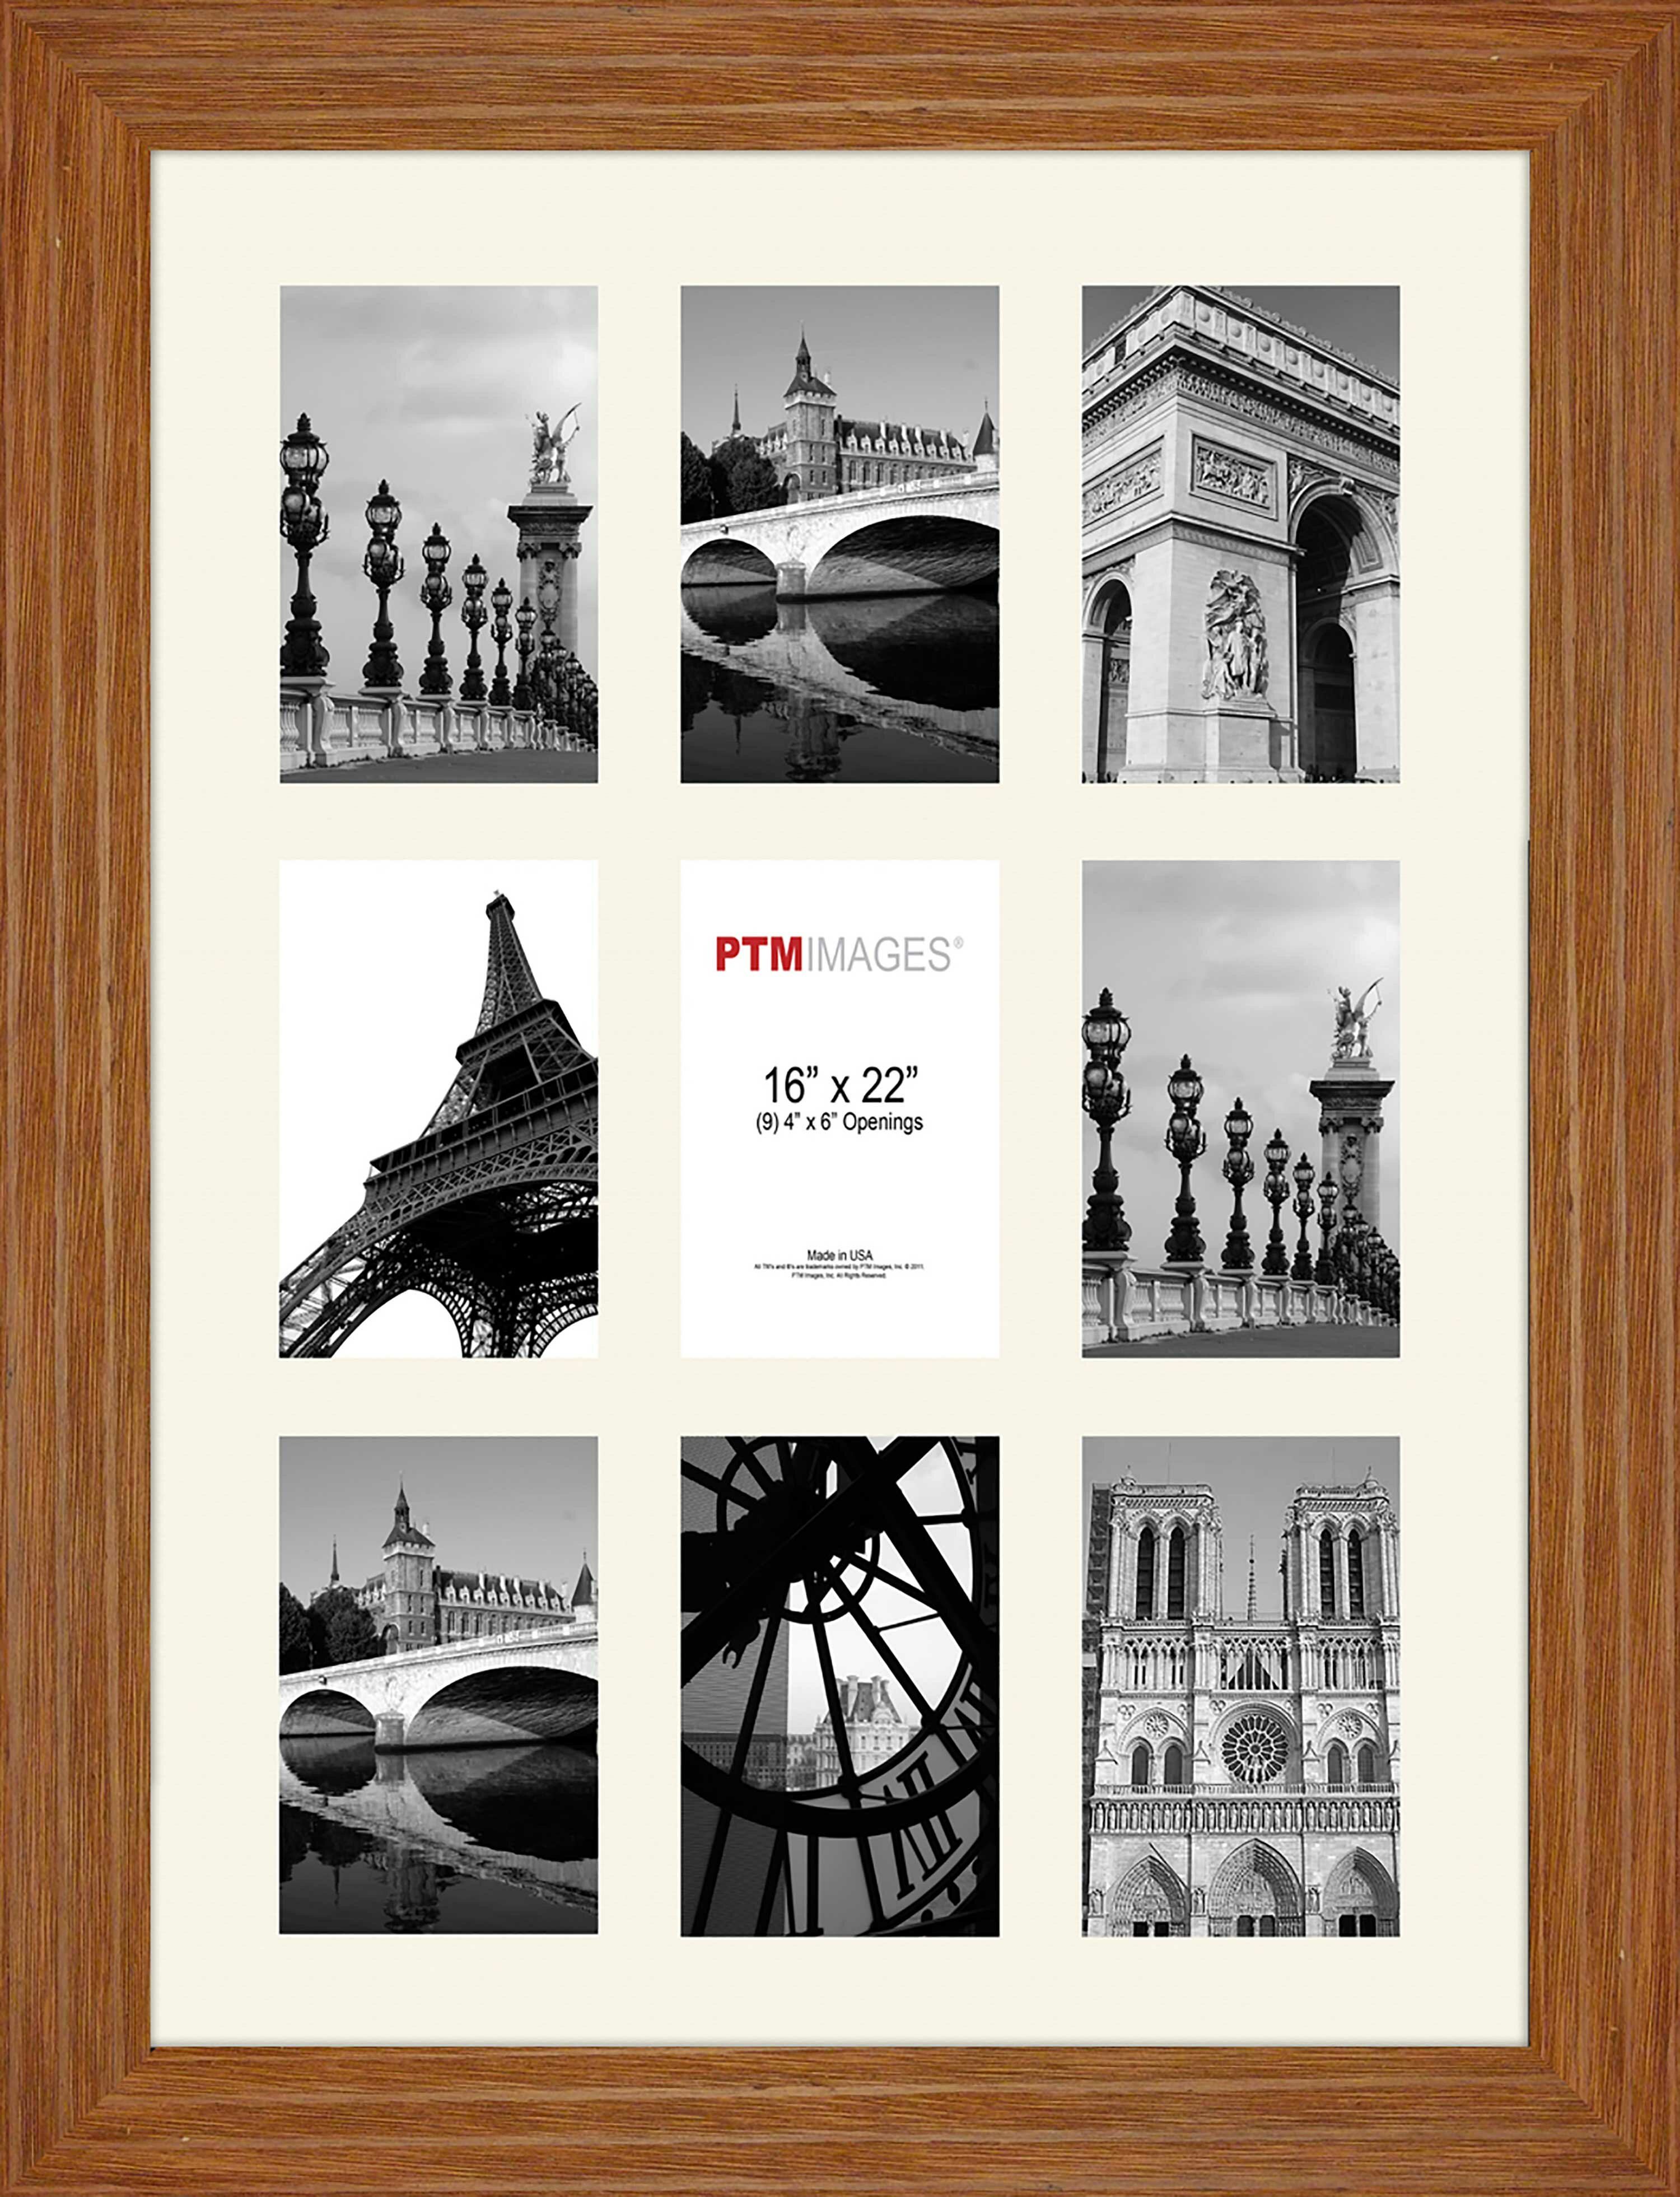 PTM Images Collage Picture Frame | Wayfair